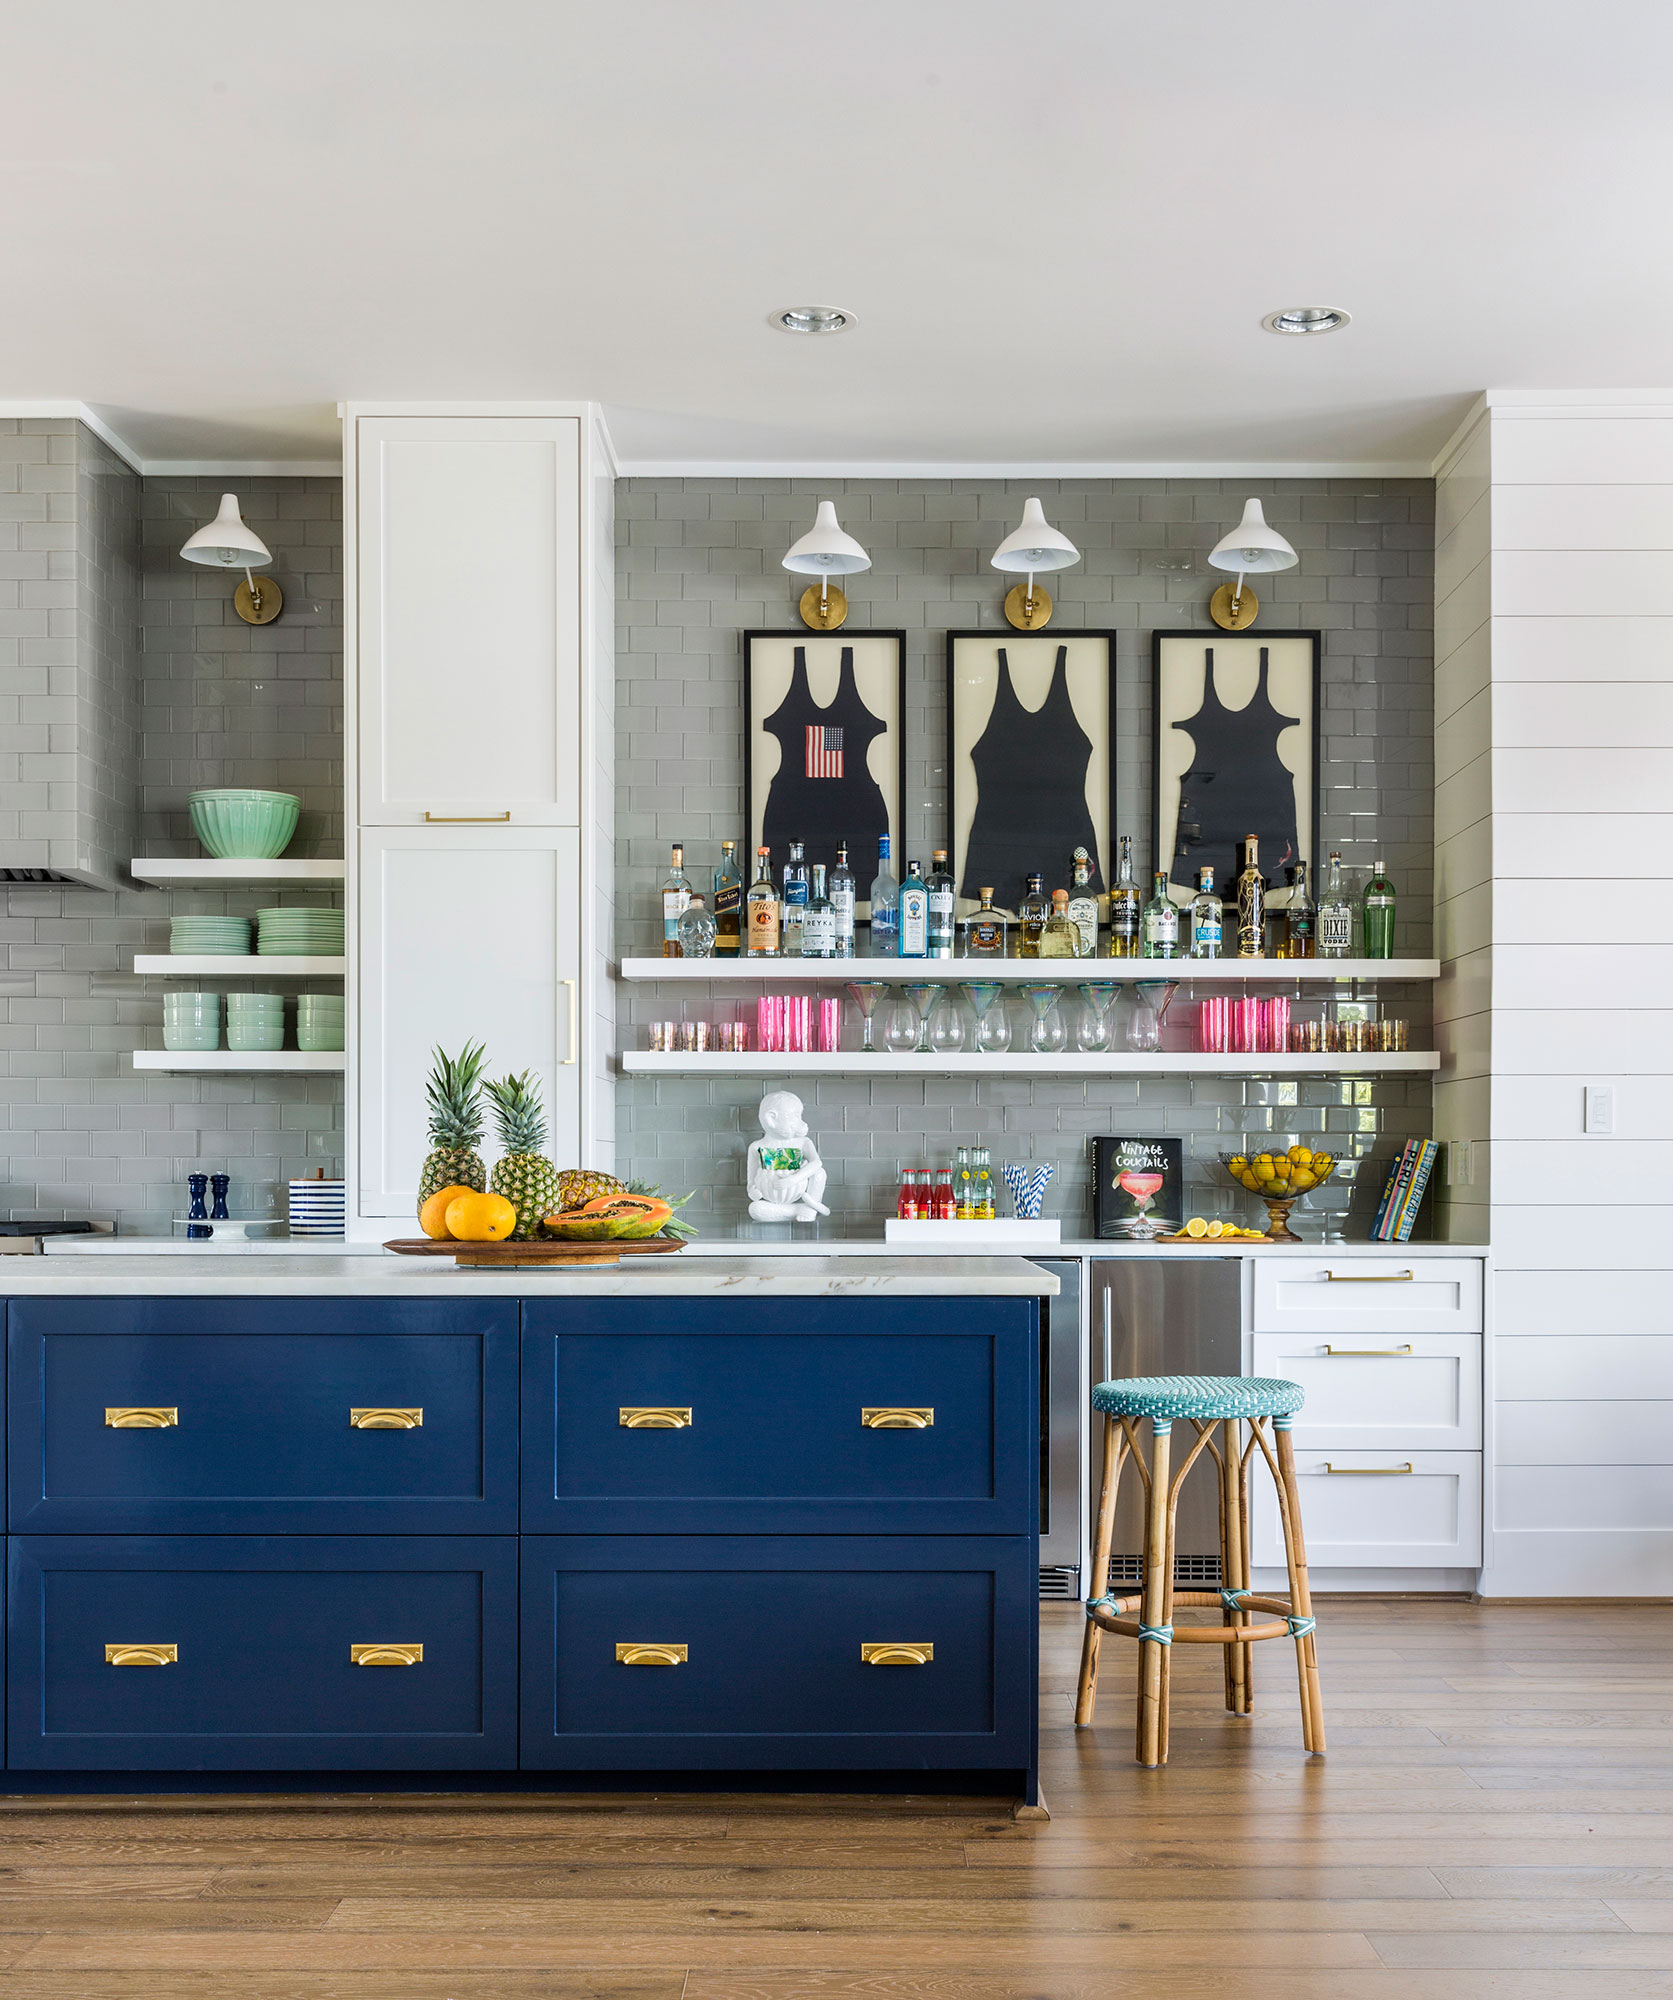 Kitchen Interiors Photography - Julie Soefer Photography